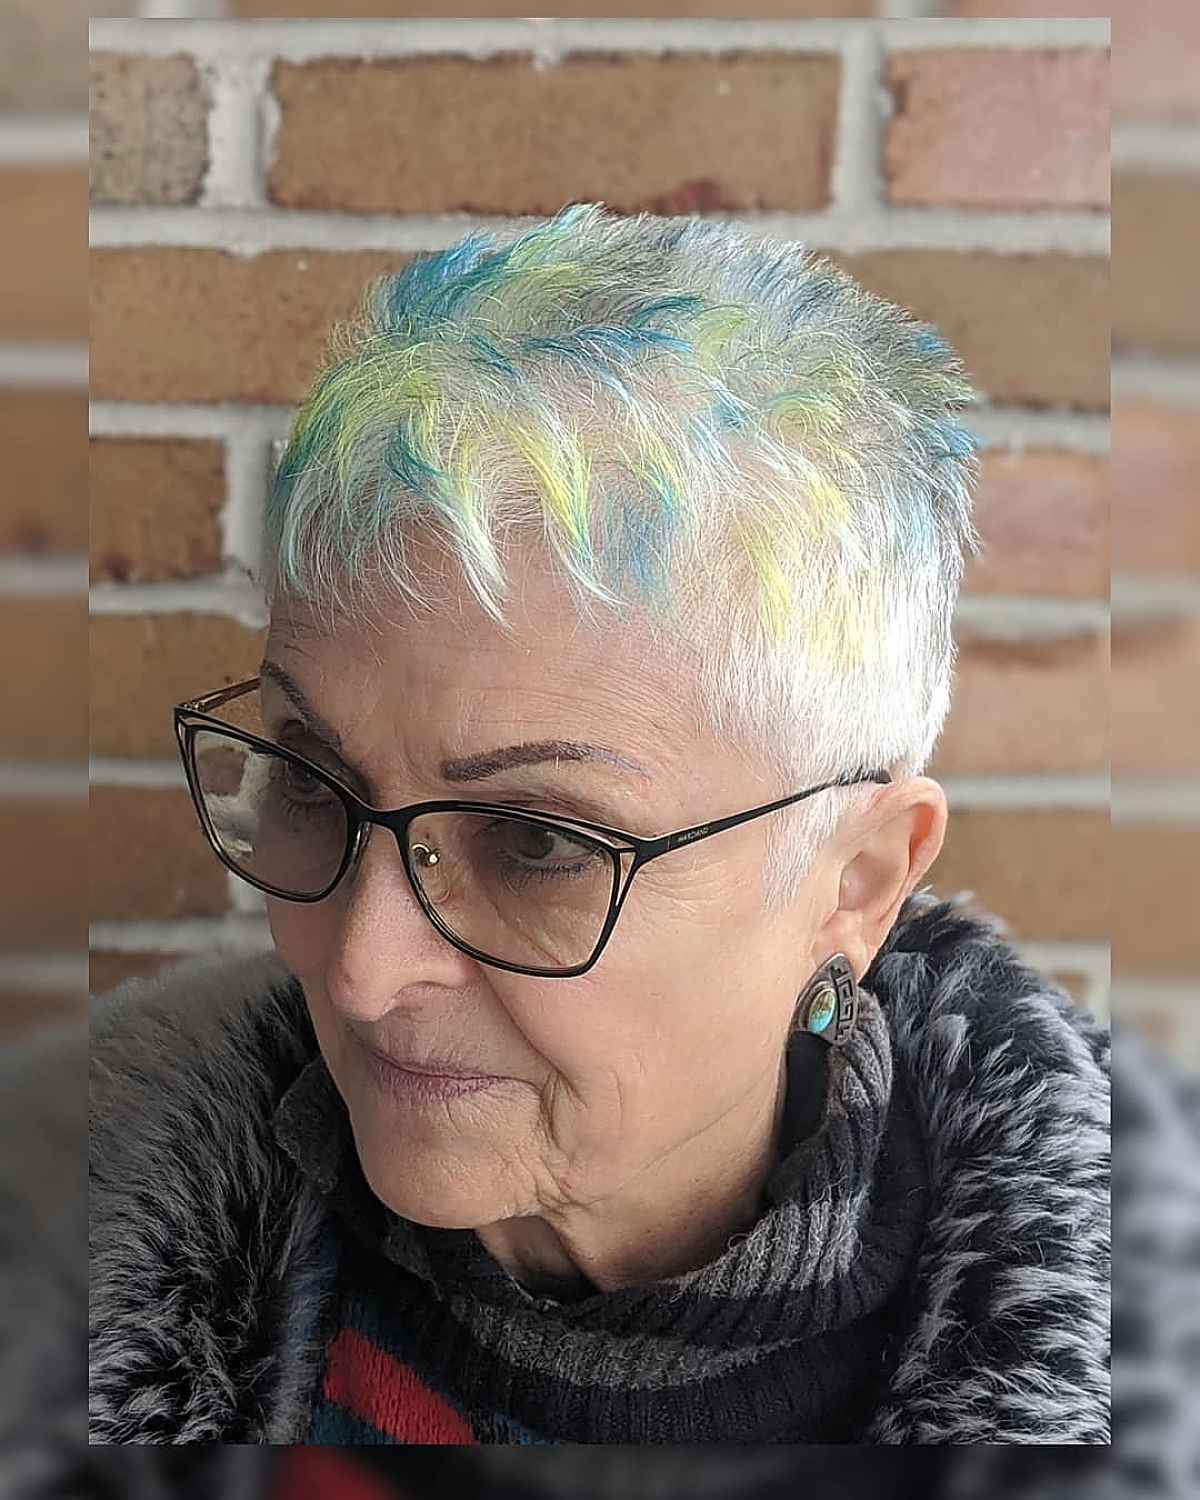 Edgy Pixie with Spikes para mujeres mayores de 60 años